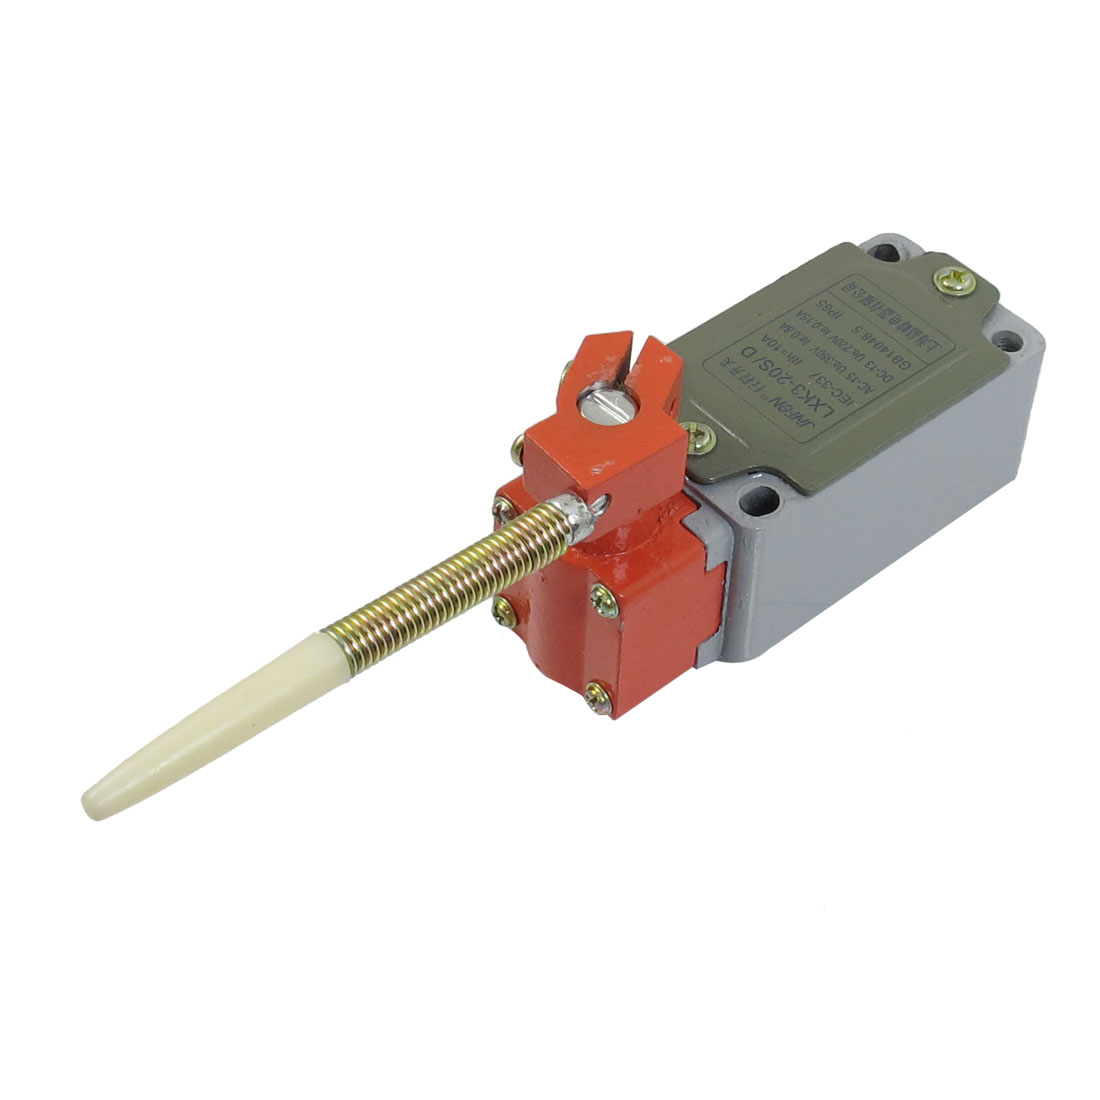 LXK3-20S/D Adjustable Rotary Lever Momentary Limit Switch 380V 10A